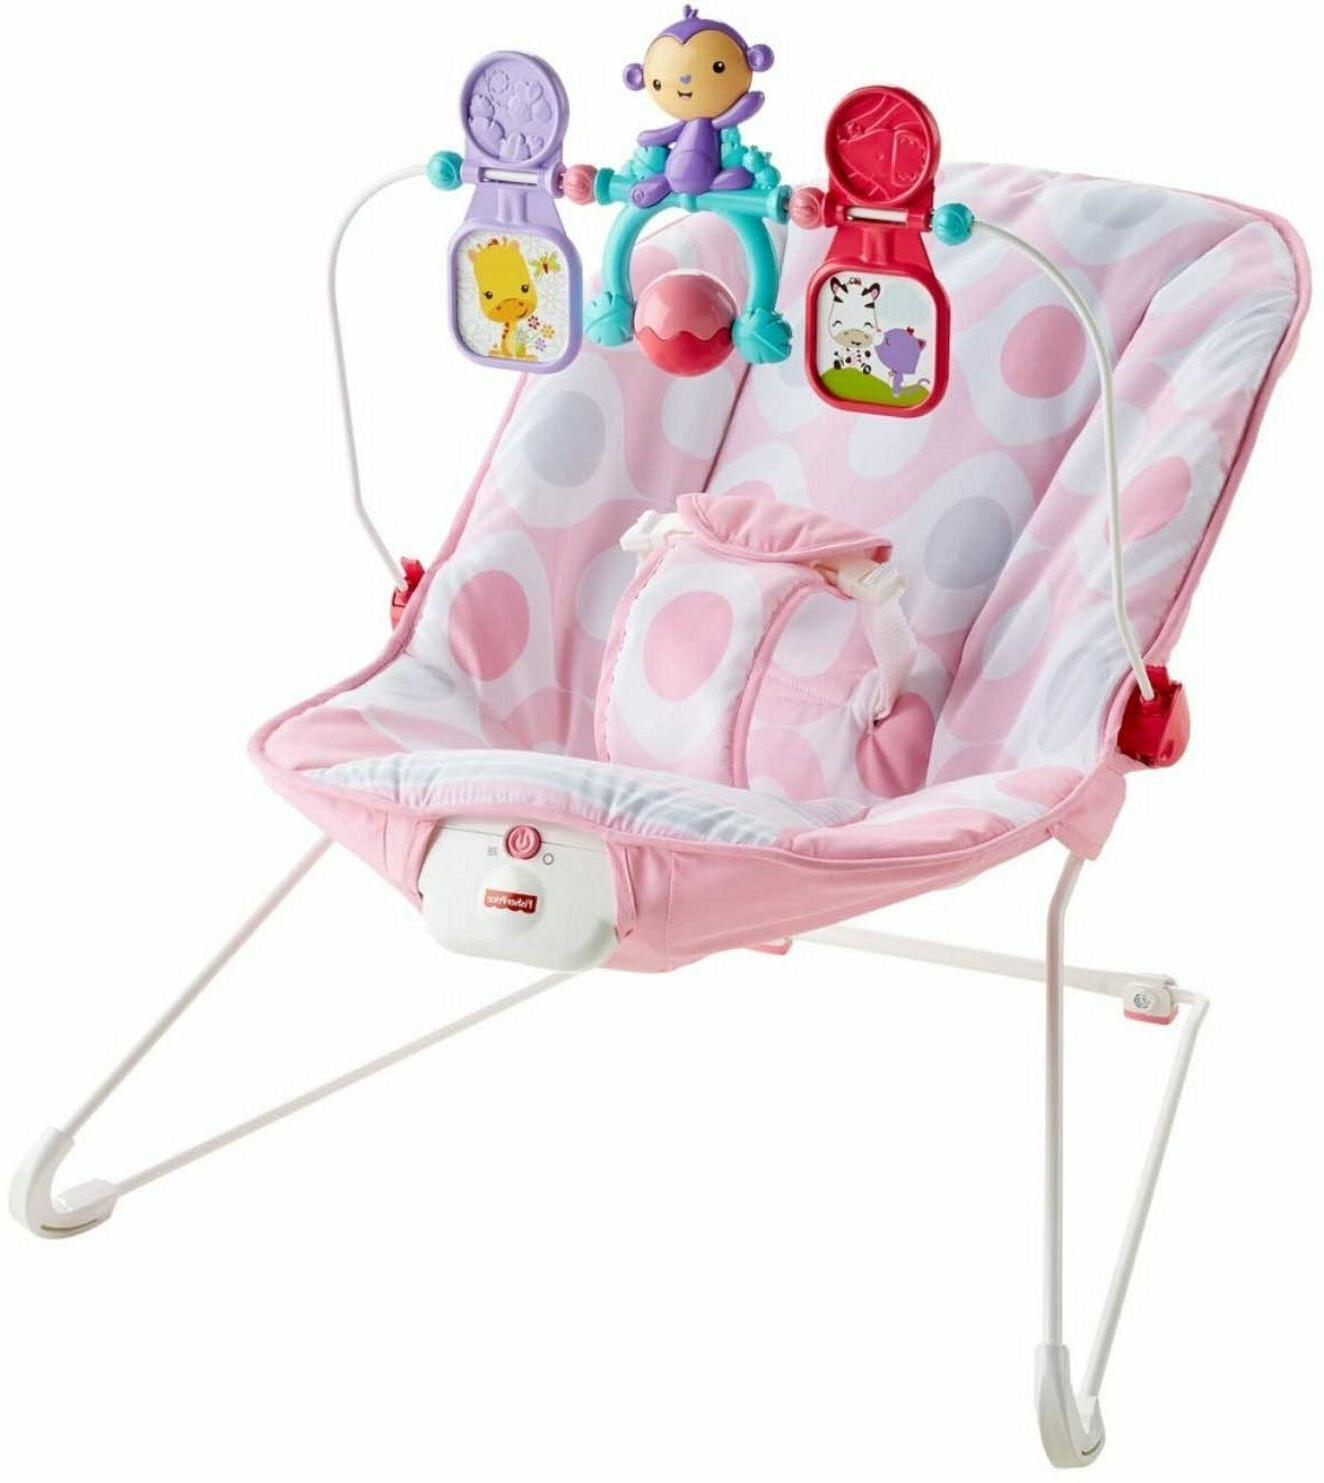 Bouncy Seat Fisher-Price Deluxe Bouncer Soft Padded Washable